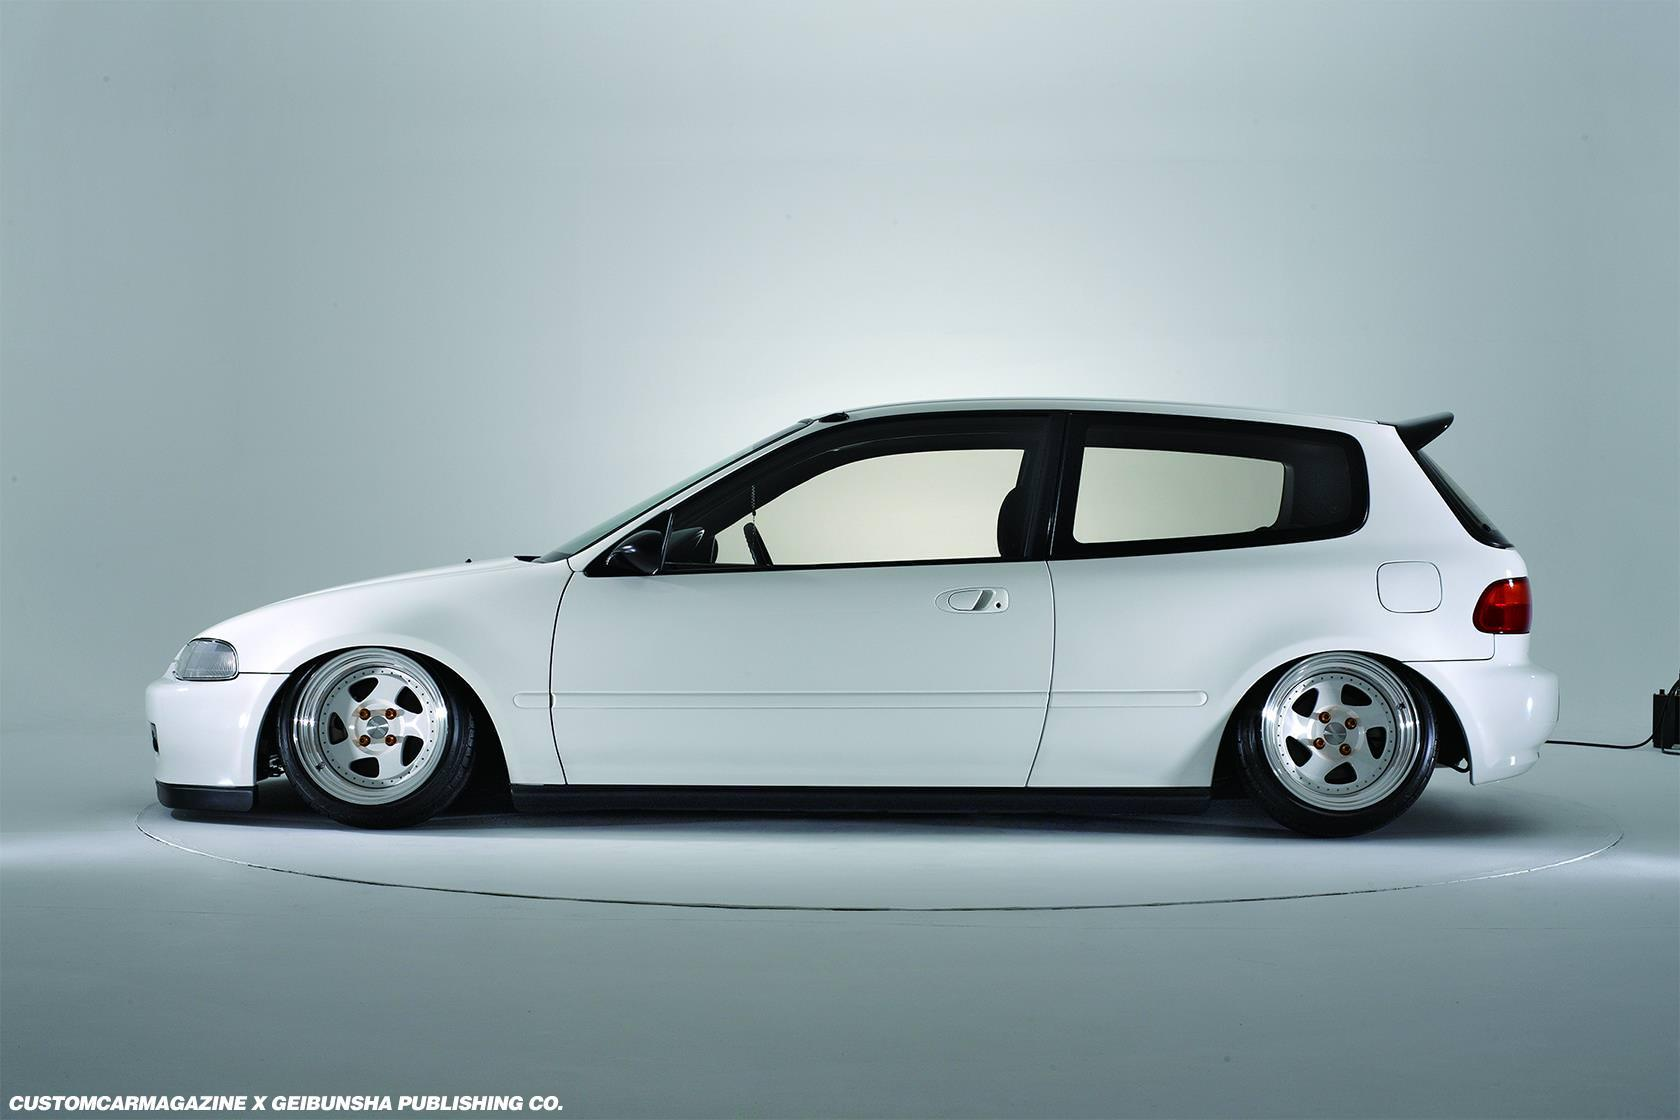 New Honda Civic Hatchback Wallpapers White